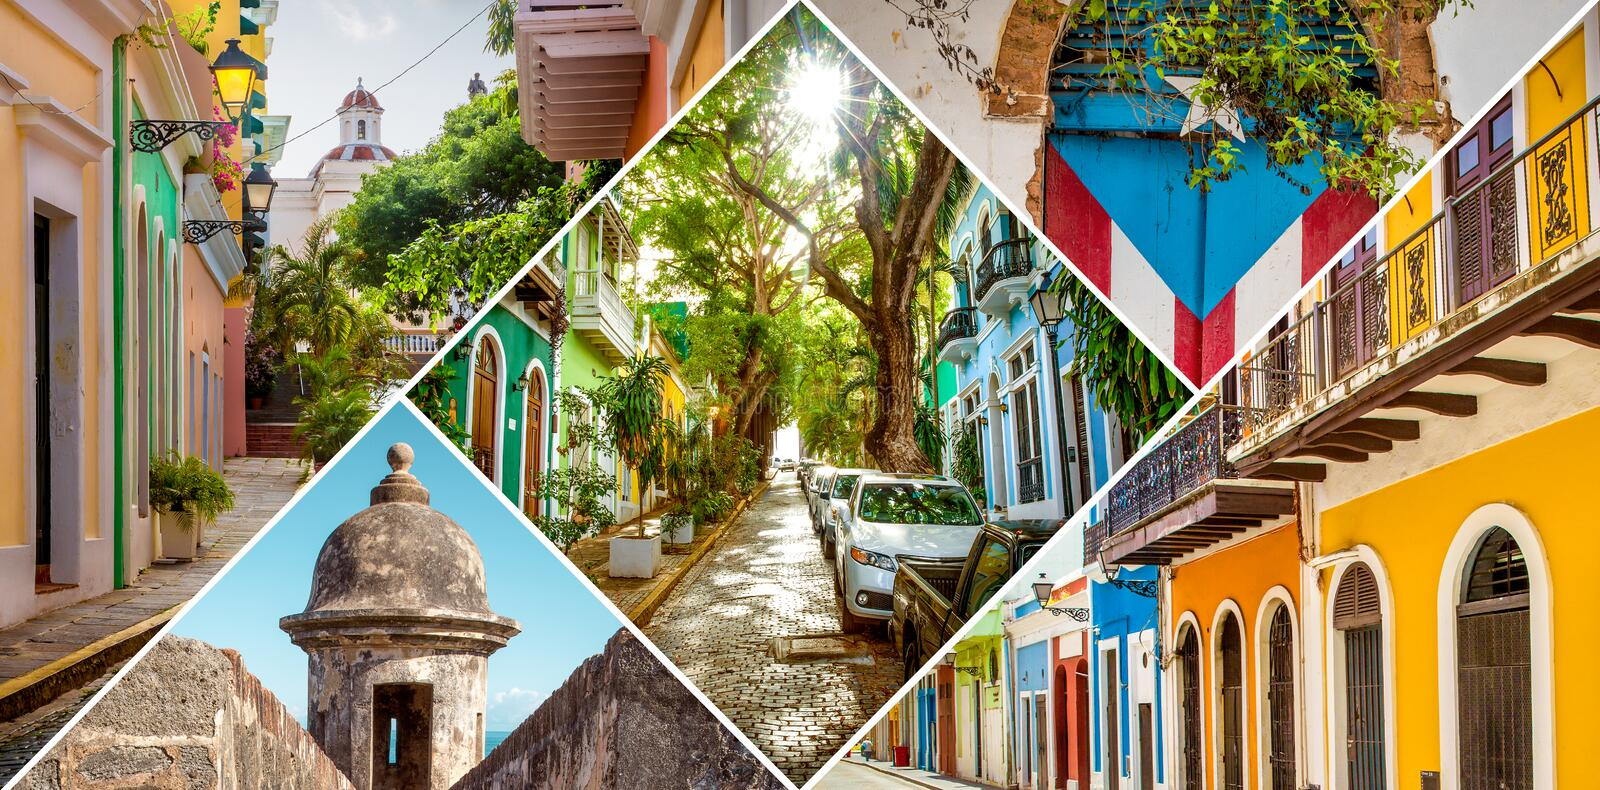 Collage of Old San Juan, Puerto Rico stock images